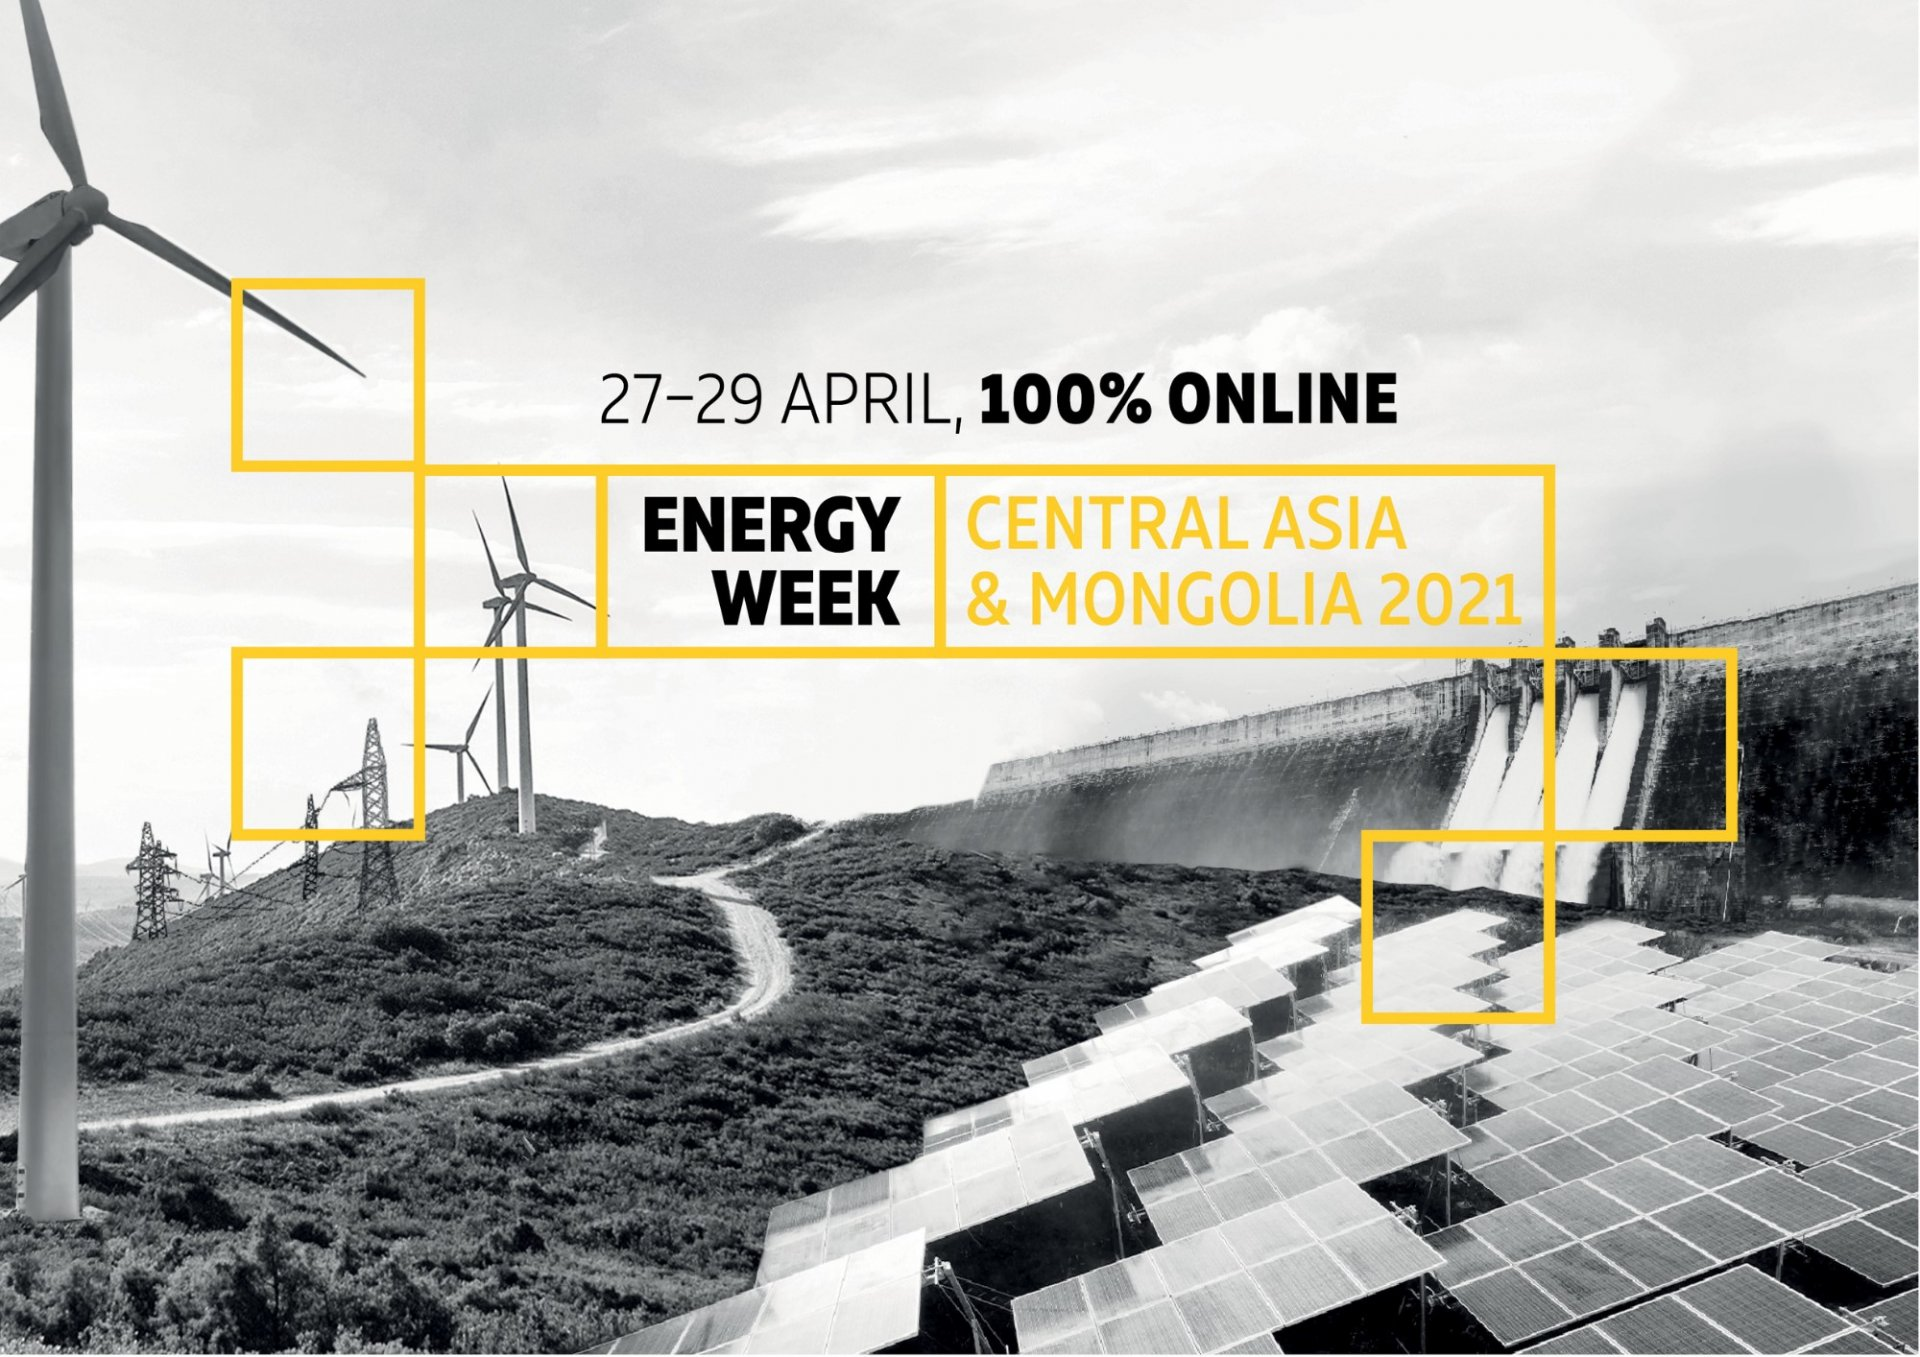 MRIA has becomeanofficial Knowledge Partner for virtual conference Energy Week Central Asia & Mongolia 2021